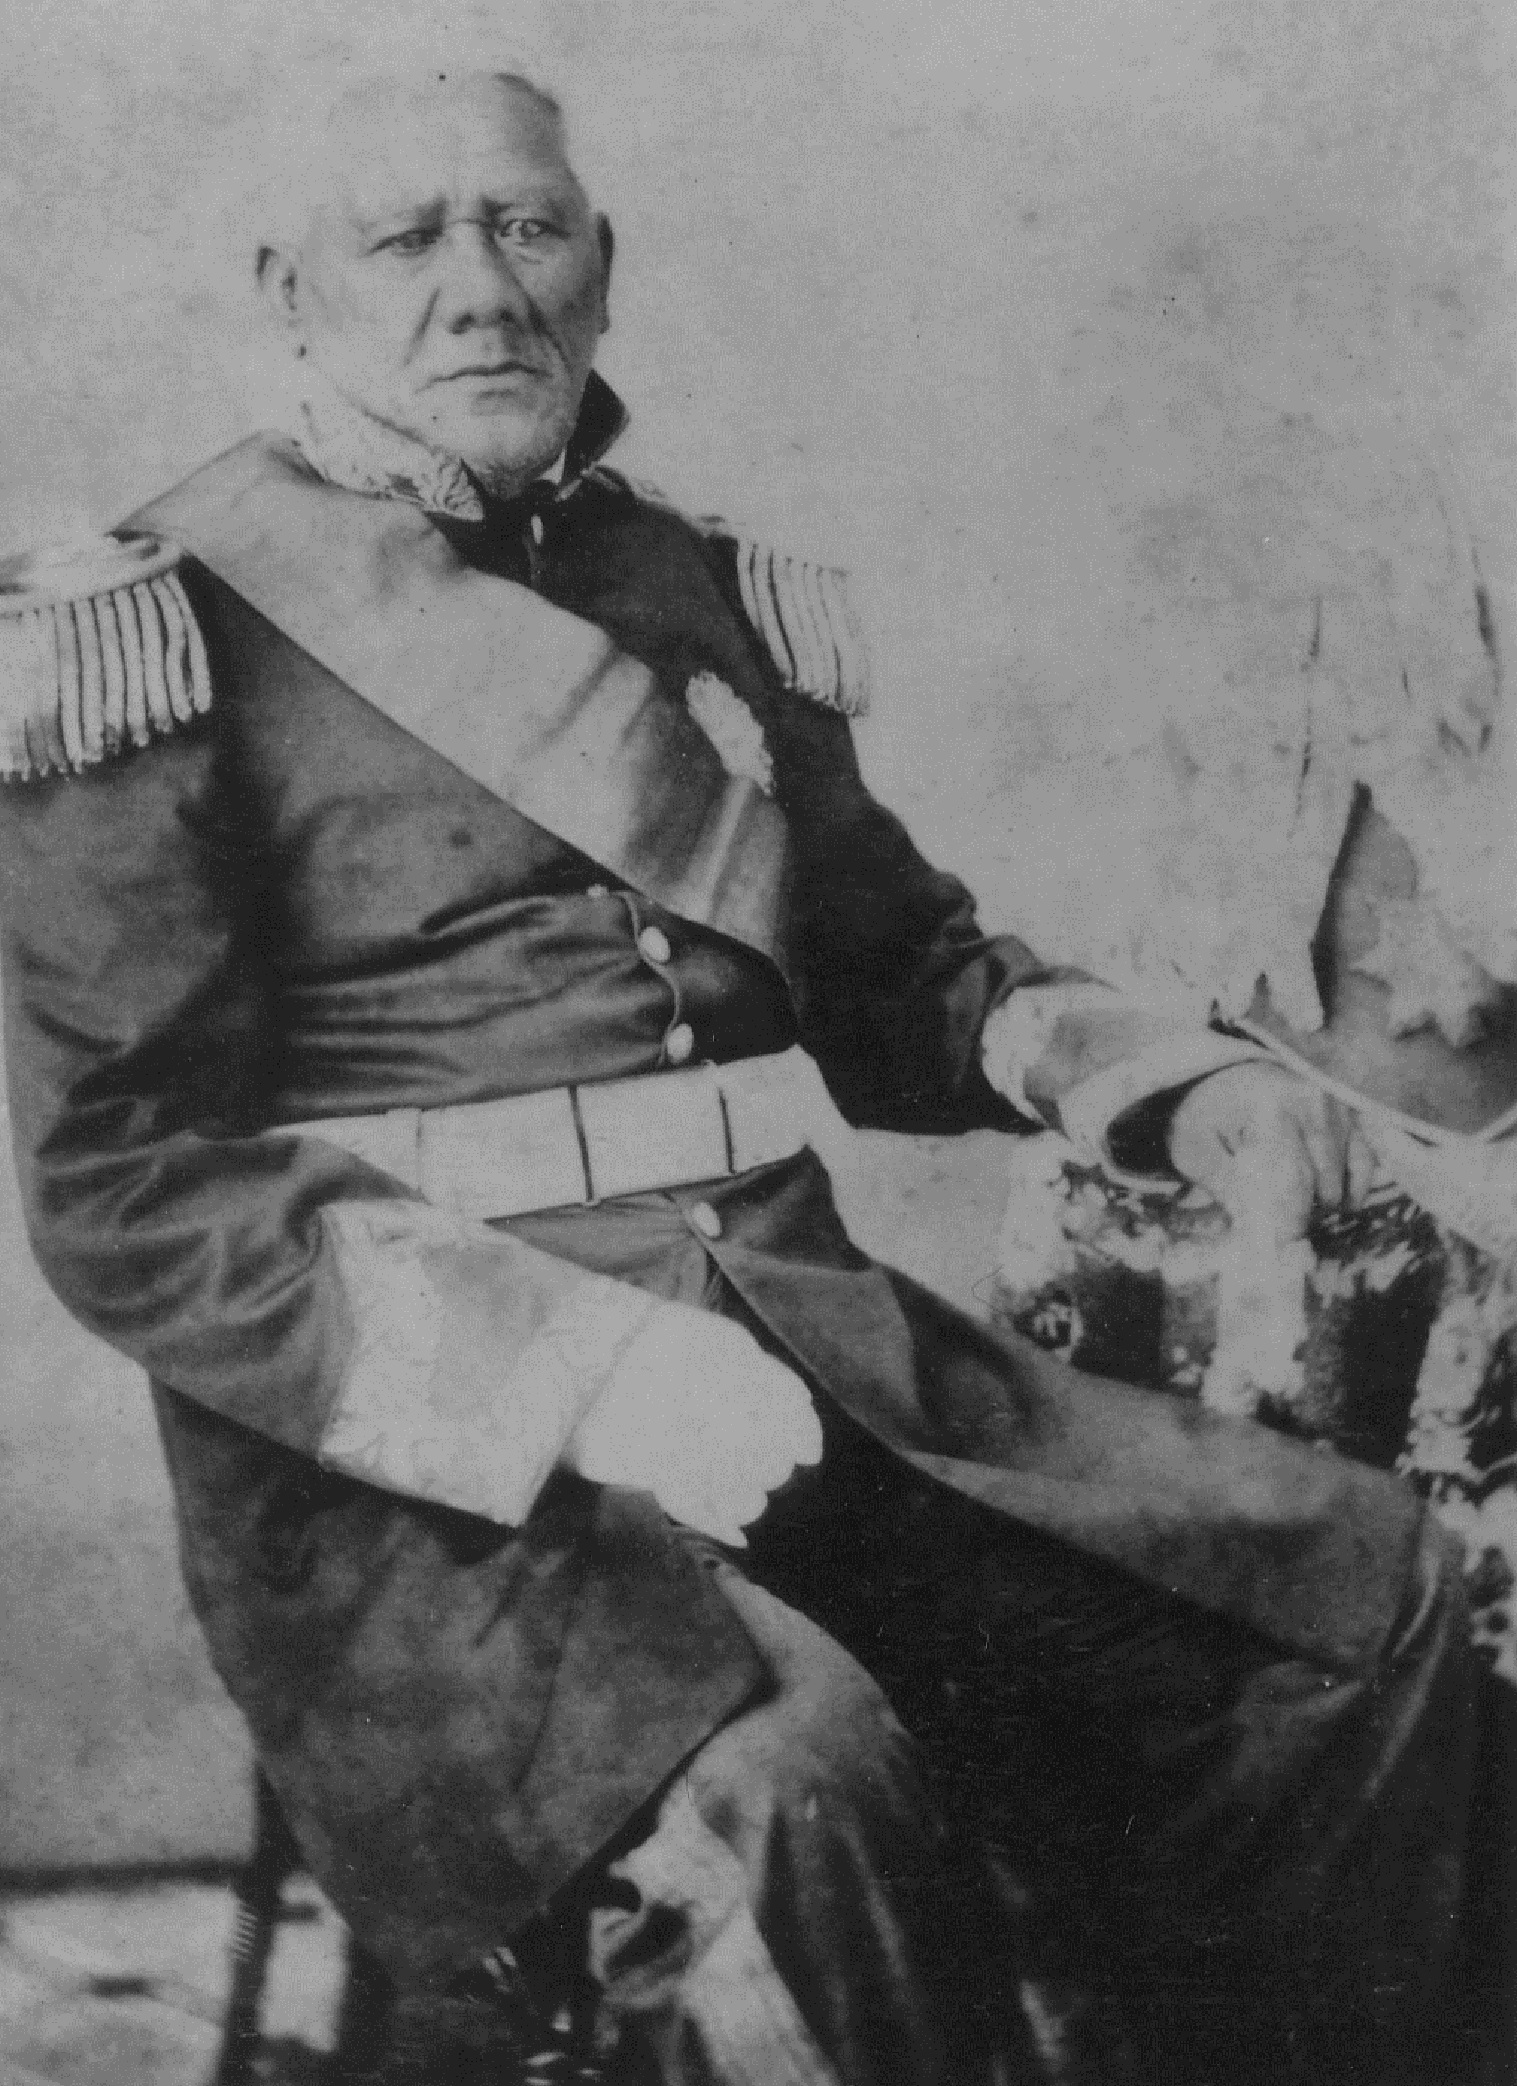 Mataio Kekuanaoa in an undated photo, who built the original 'Iolani Palace for his daughter